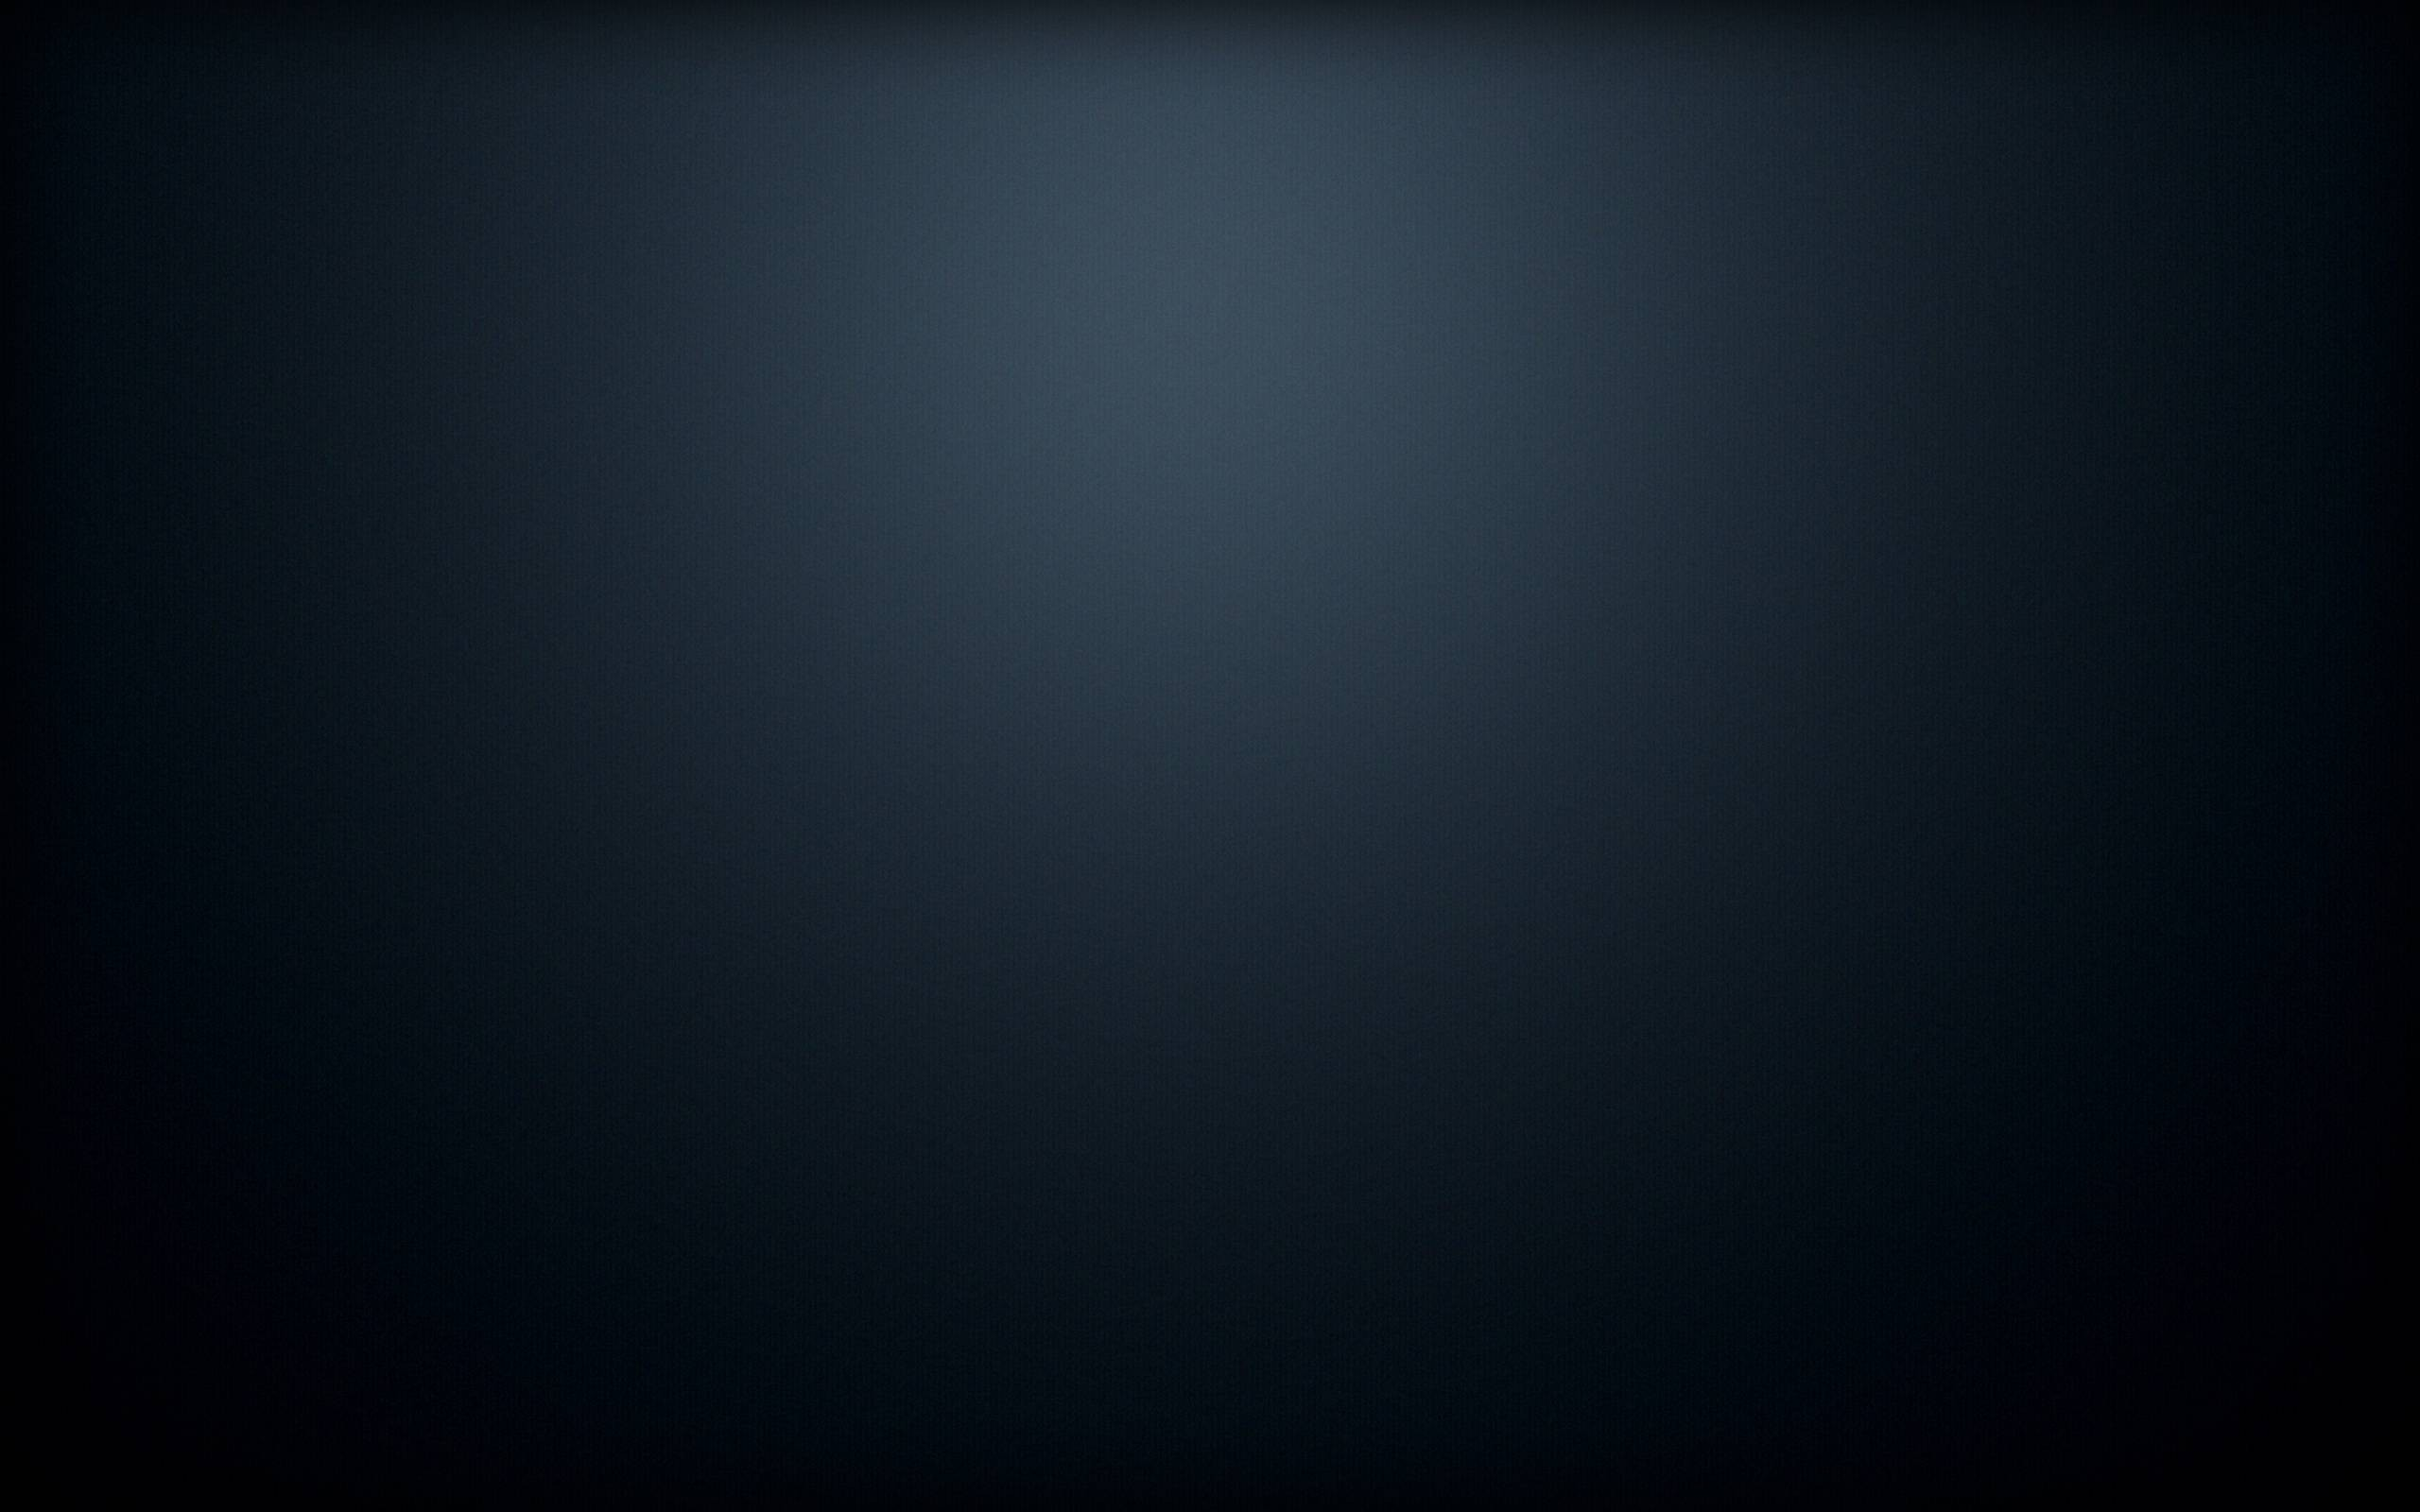 Dark Blue Background Images Wallpapertag: 67+ Dark Backgrounds ·① Download Free Cool HD Backgrounds